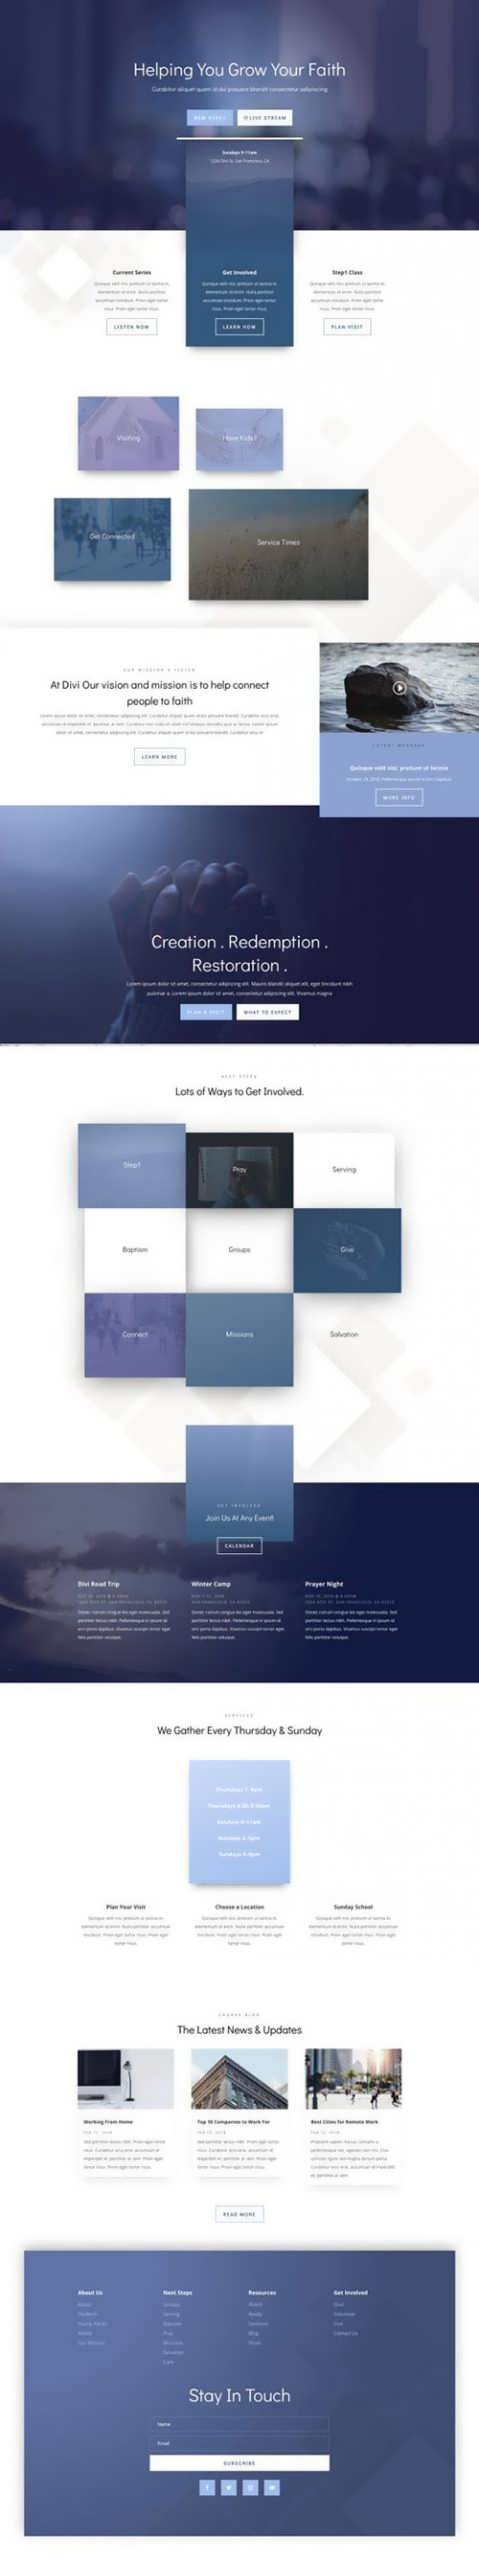 church landing page scaled